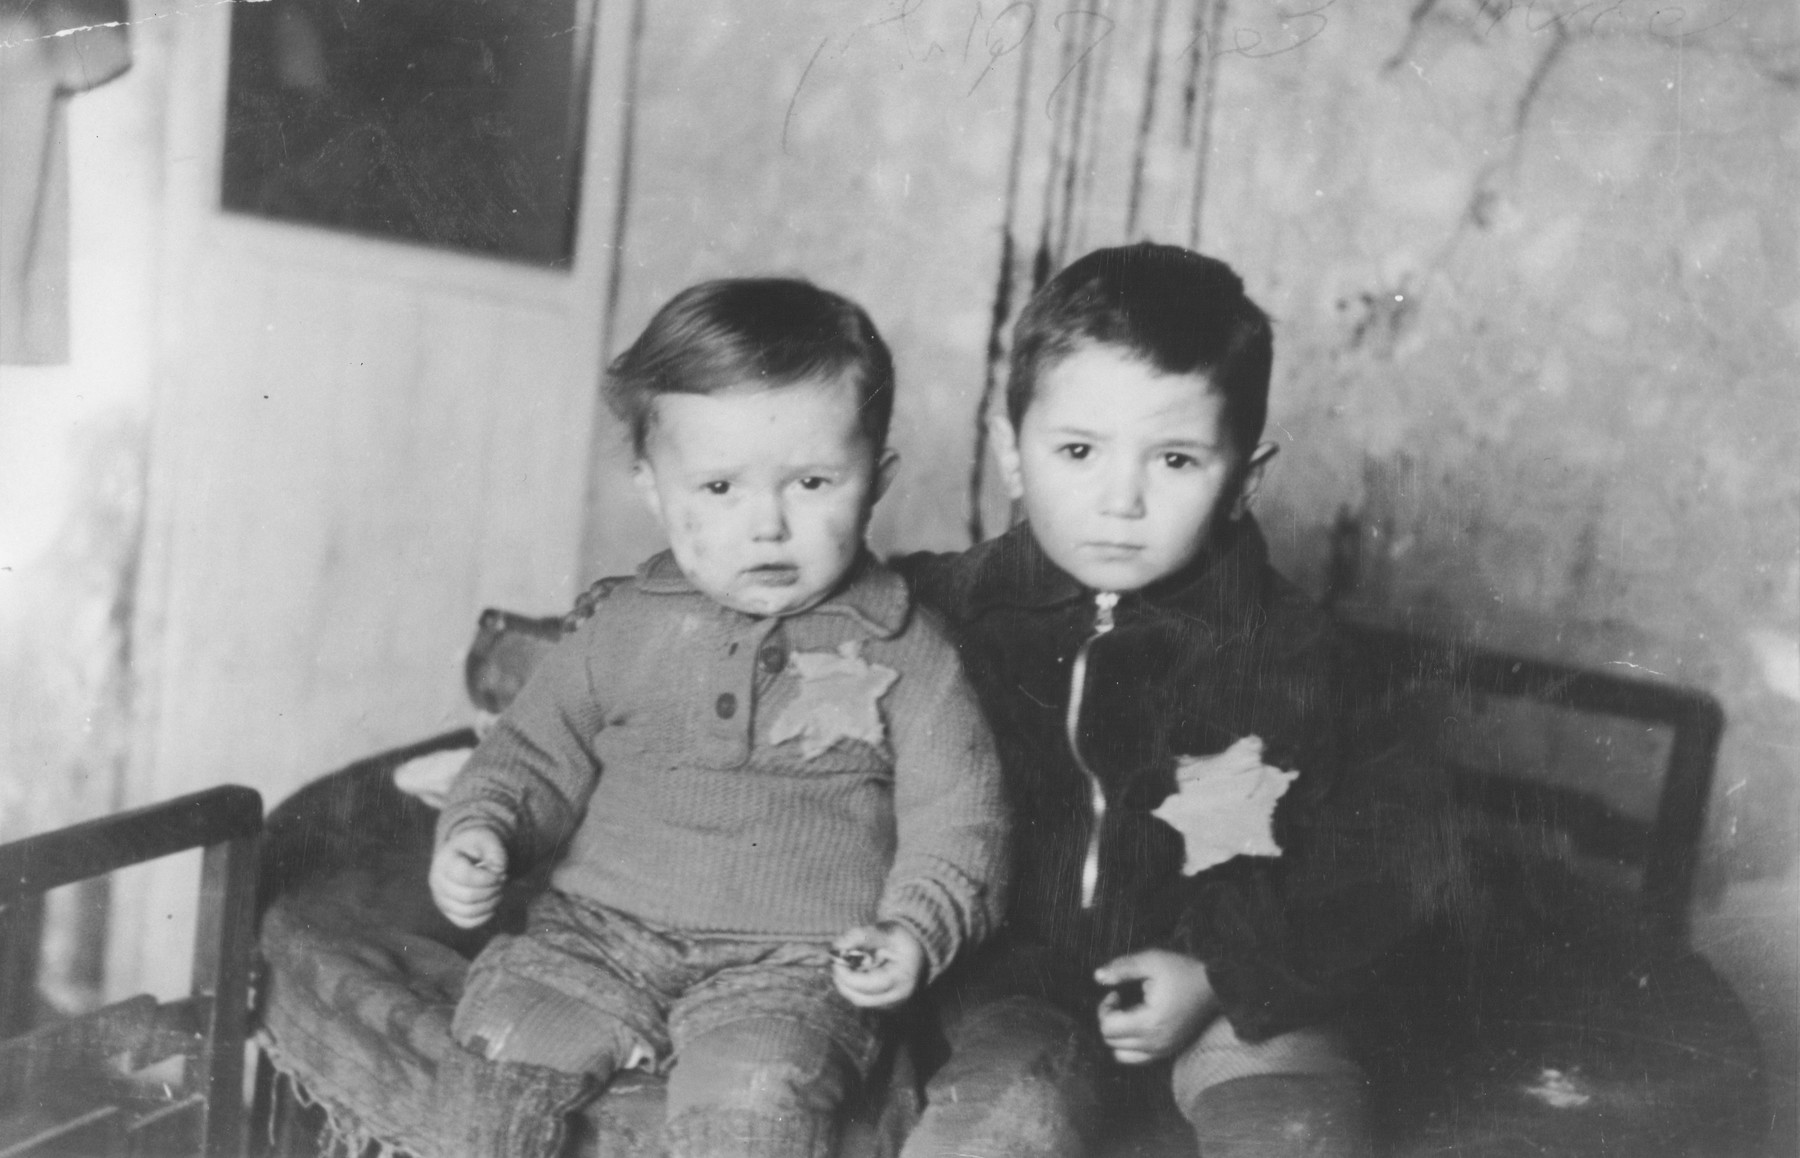 "Portrait of two young boys wearing Jewish badges in the Kovno ghetto taken shortly before their round-up in the March 1944 ""Children's Action"".  Pictured are Avram (5 years) and Emanuel Rosenthal (2 years).  Emanuel was born in the Kovno ghetto.  The children, who were deported in the March 1944 ""Children's Action,"" did not survive.  Their uncle, Shraga Wainer, who had asked George Kadish to take this photograph, received a copy of it from the photographer after the war in the Landsberg displaced persons camp."